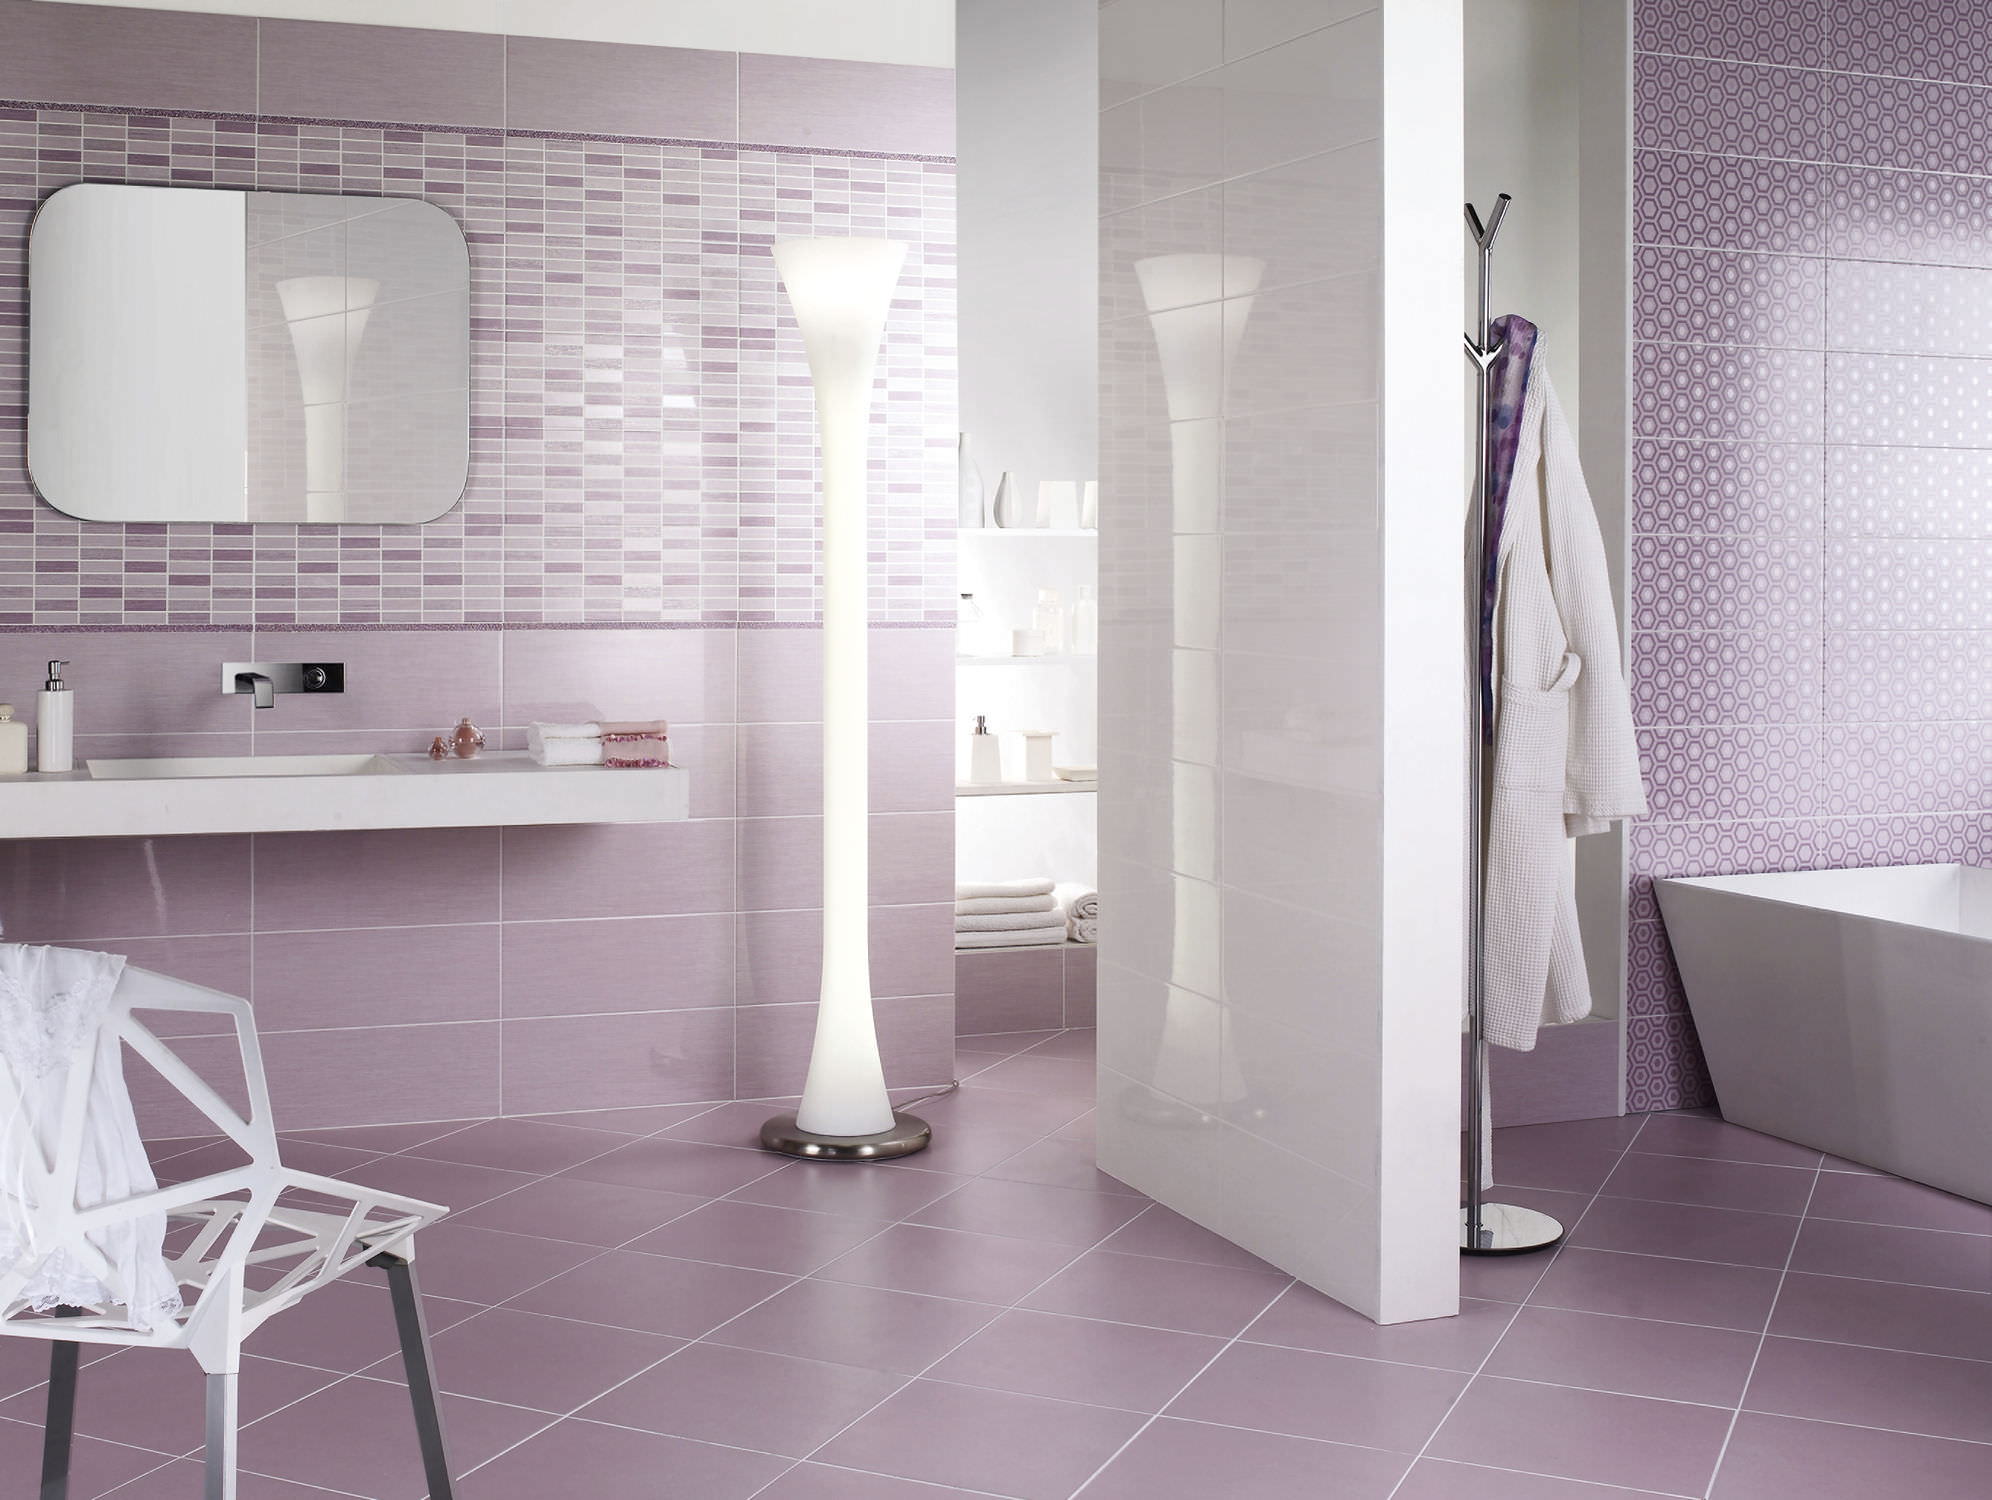 30 Ideas for bathroom carpet floor tiles